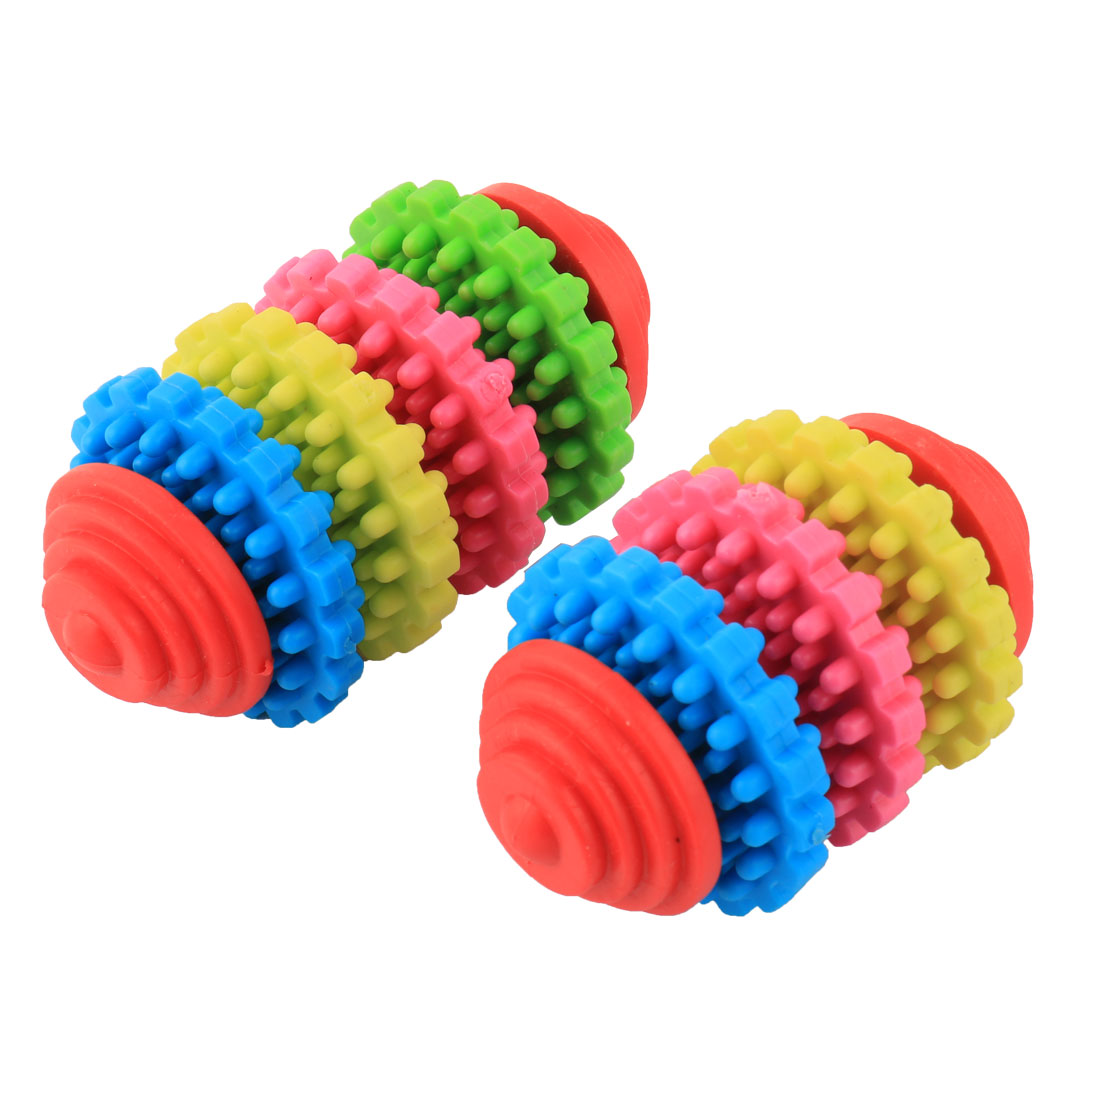 Pet Dog Doggy Puppy Spike Gear Chew Toy Play Teeth Clean Multicolor 2 in 1